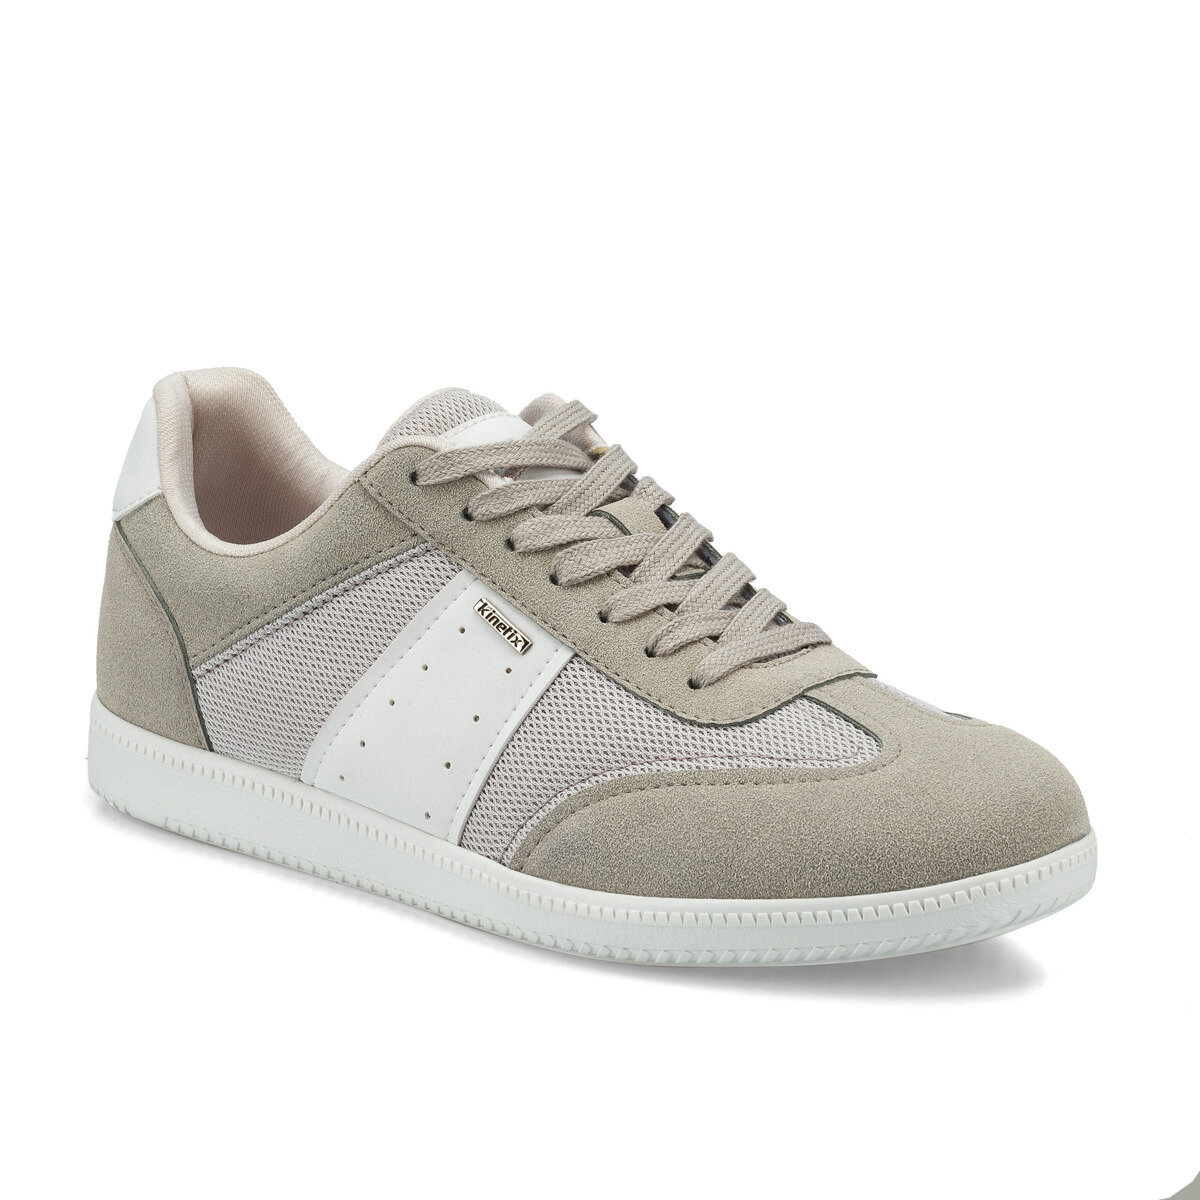 FLO MAURY Gray Men 'S Sneaker Shoes KINETIX